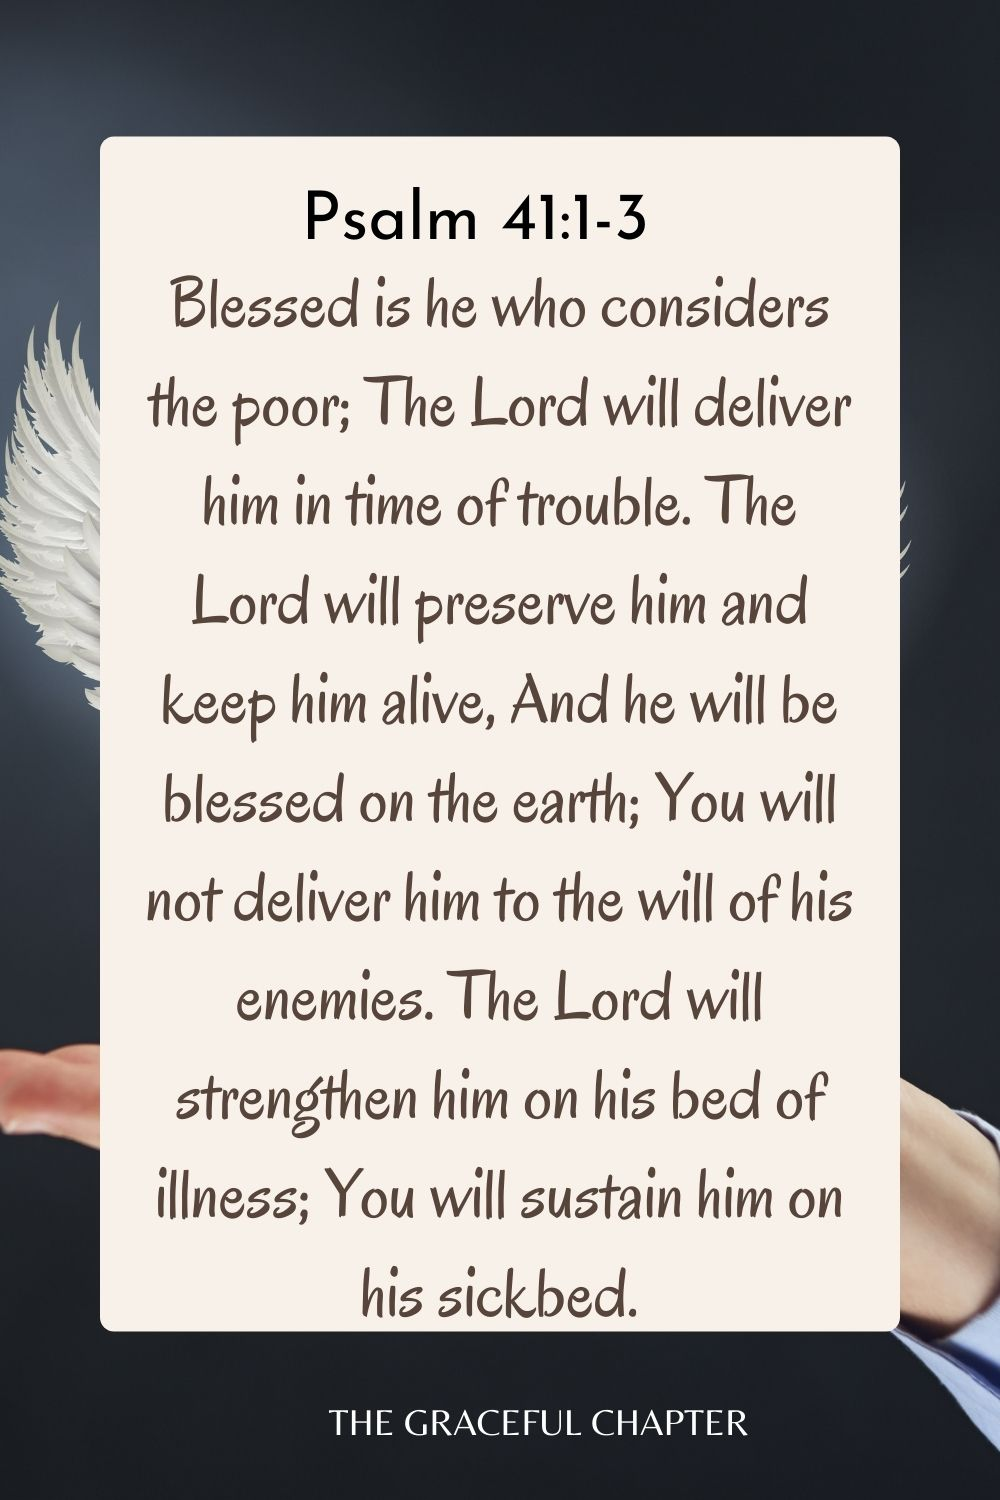 Blessed is he who considers the poor; The Lord will deliver him in time of trouble. The Lord will preserve him and keep him alive, And he will be blessed on the earth; You will not deliver him to the will of his enemies. The Lord will strengthen him on his bed of illness; You will sustain him on his sickbed. Psalm 41:1-3